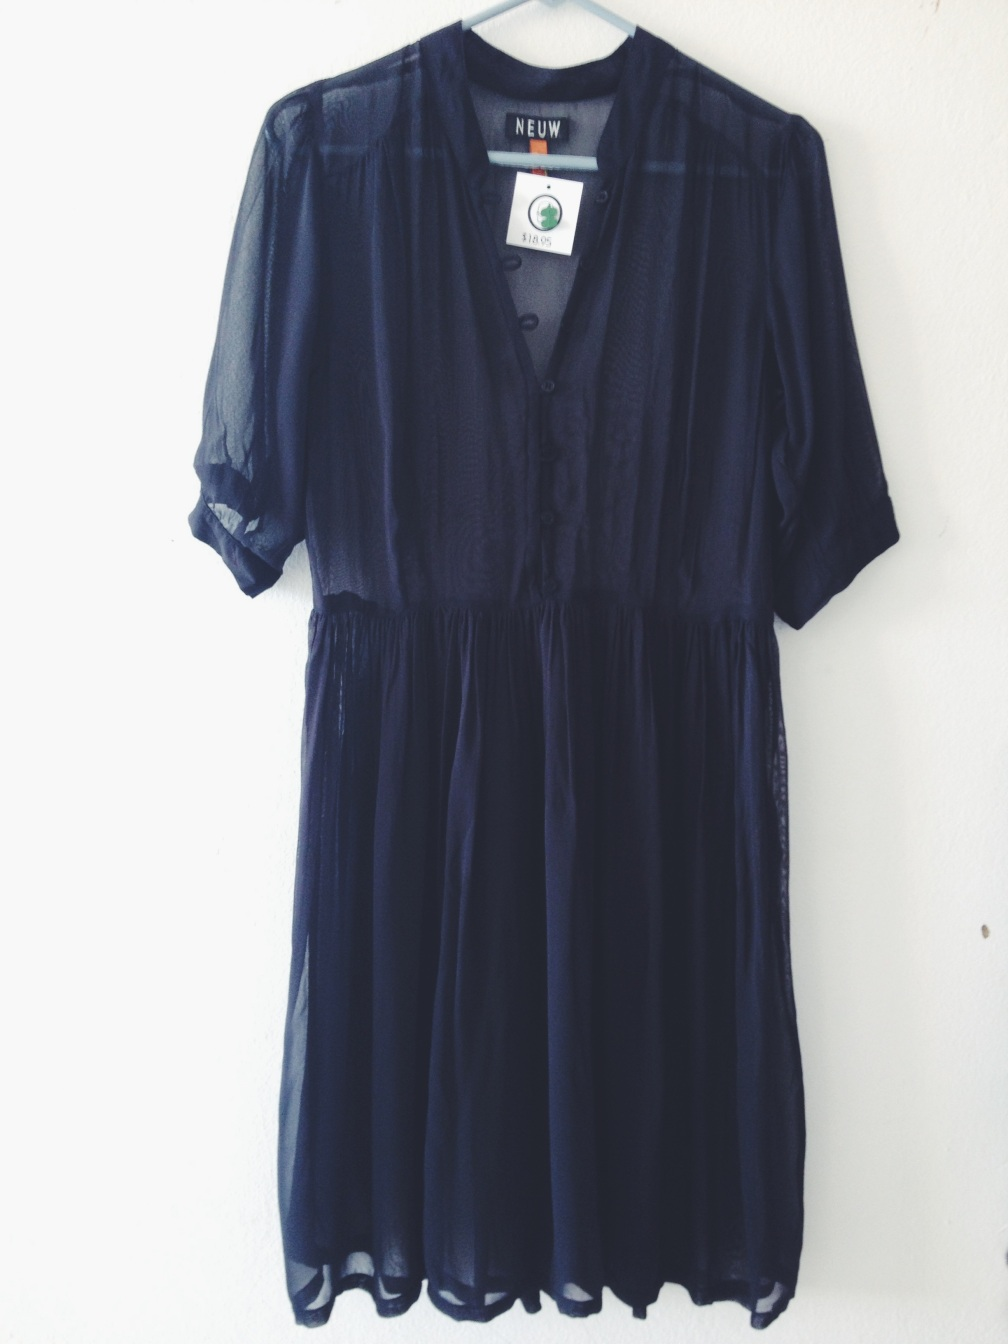 Sheer Dress from Beacons Closet